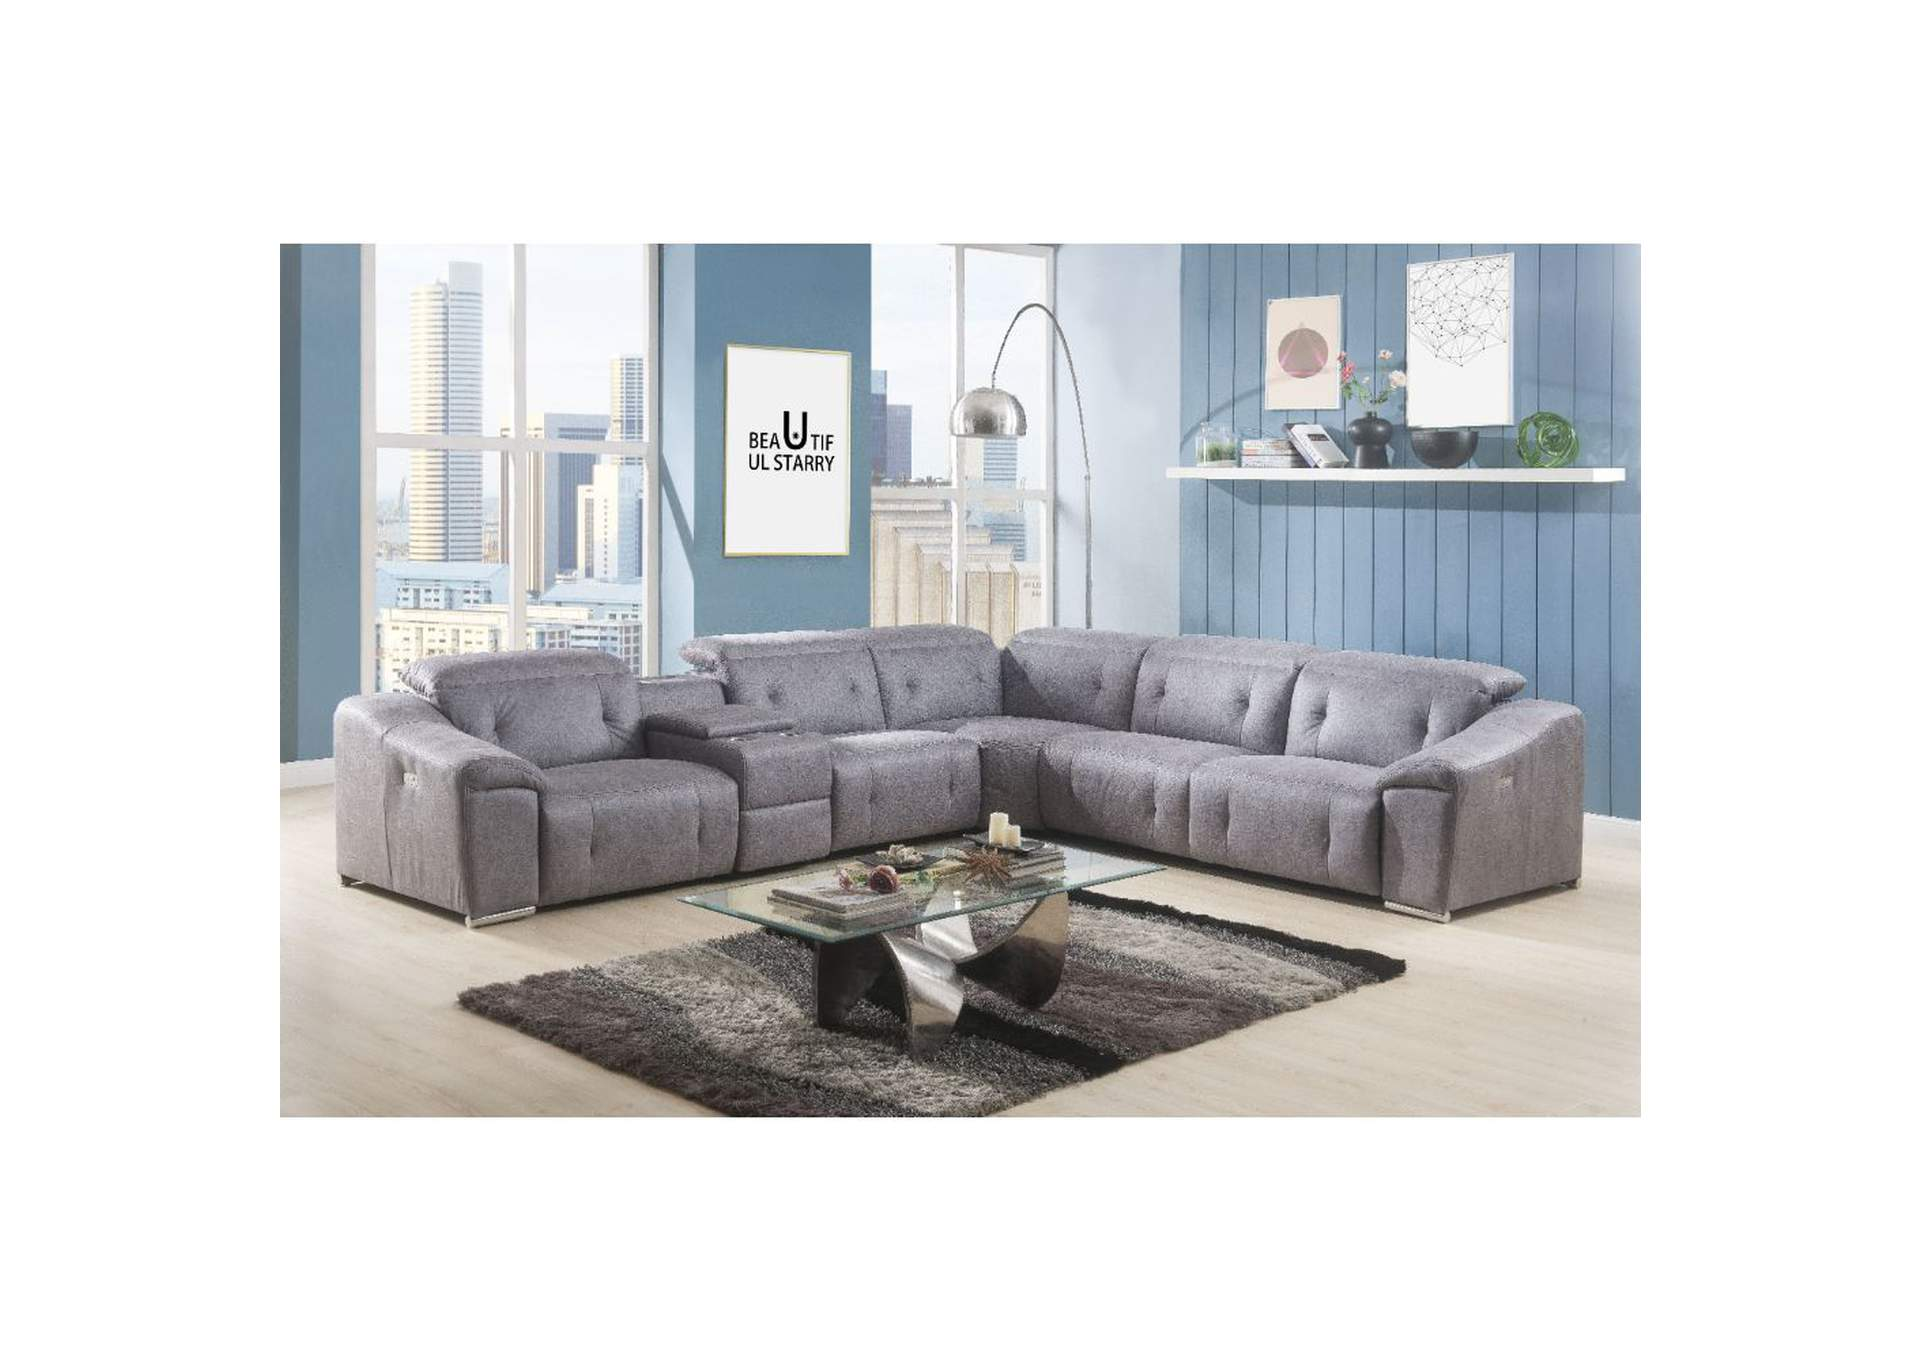 Microfiber Sectional Sofa The Furniture Outlet Ny Hosta Gray Microfiber Sectional Sofa